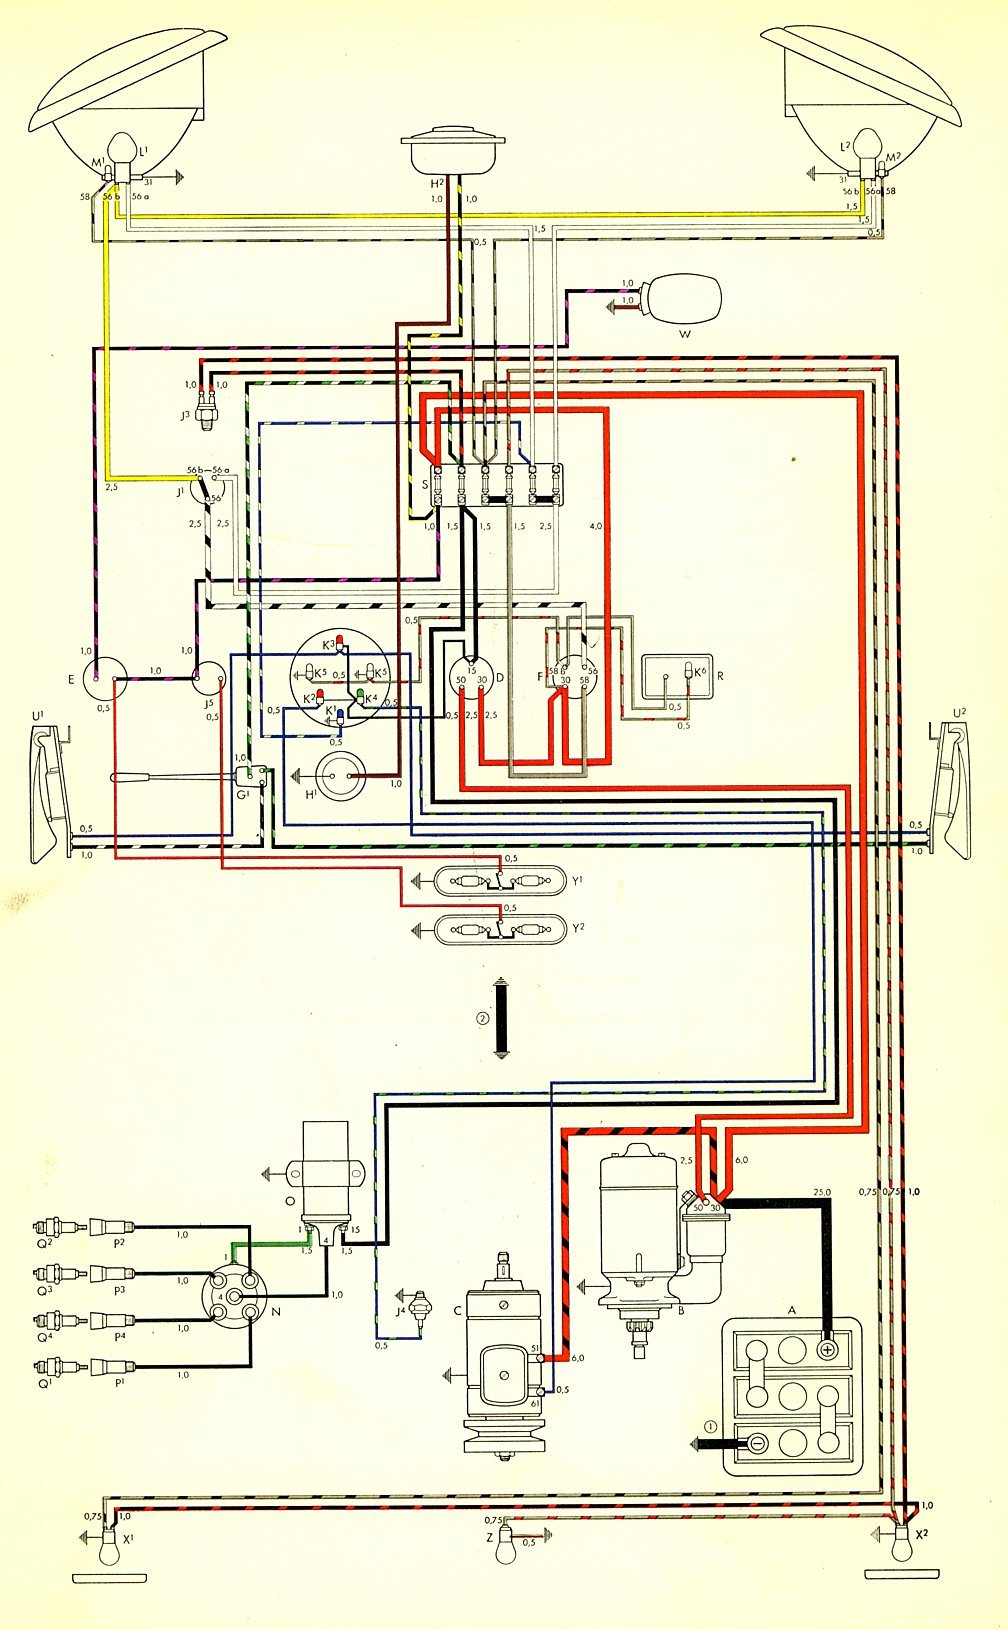 bus_59 thesamba com type 2 wiring diagrams find wiring diagram for 87 ford f 150 at sewacar.co